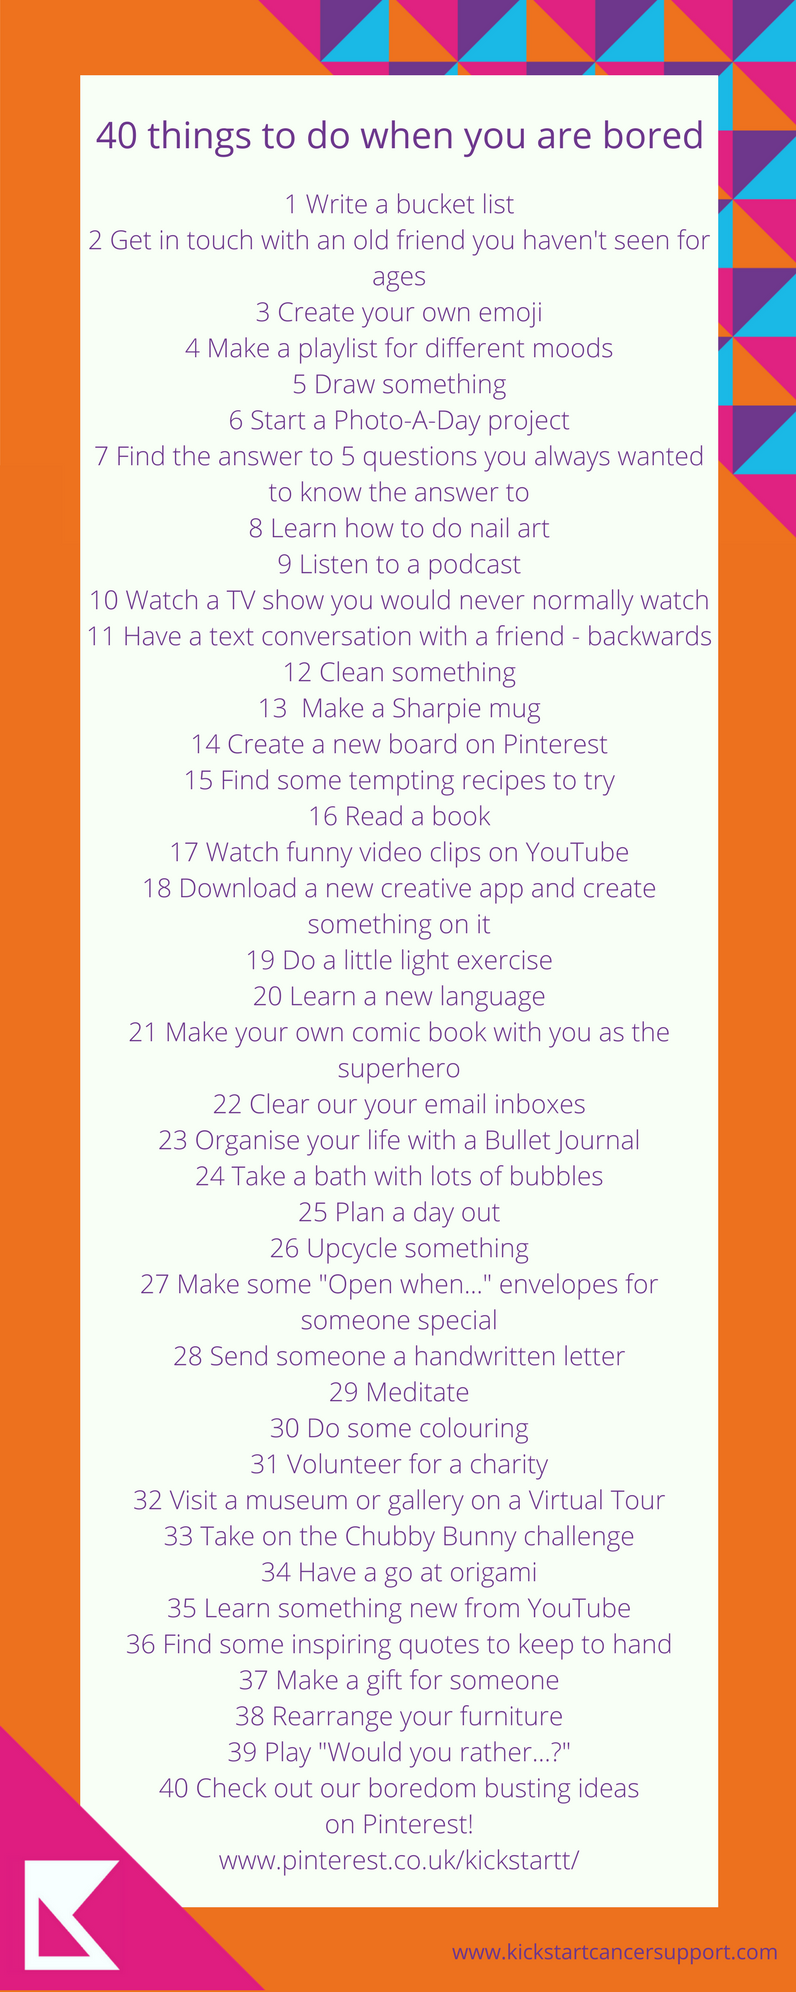 40 things to do when you are bored.png